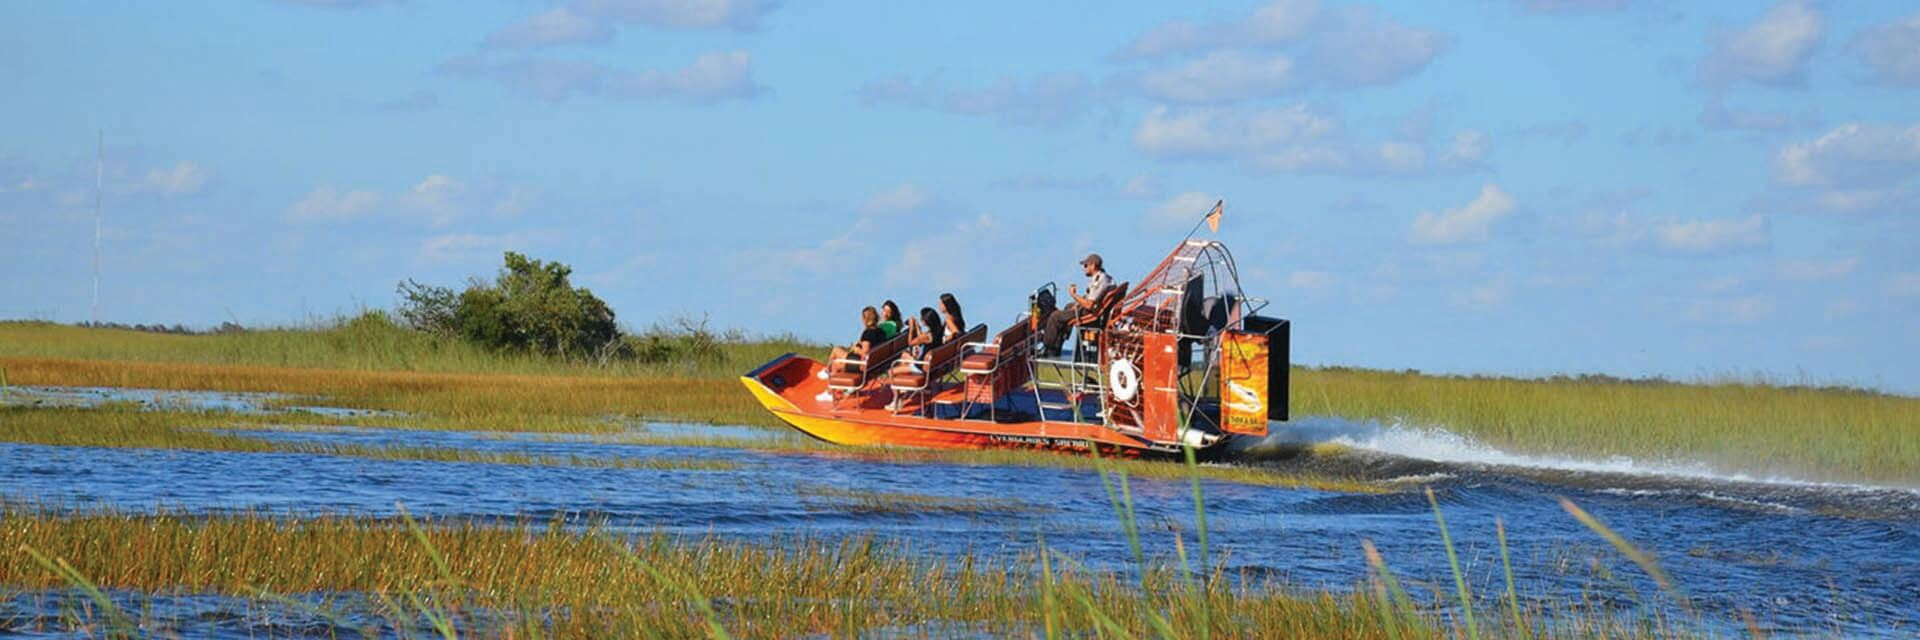 Everglades Airboat Ride - Biscayne from Miami